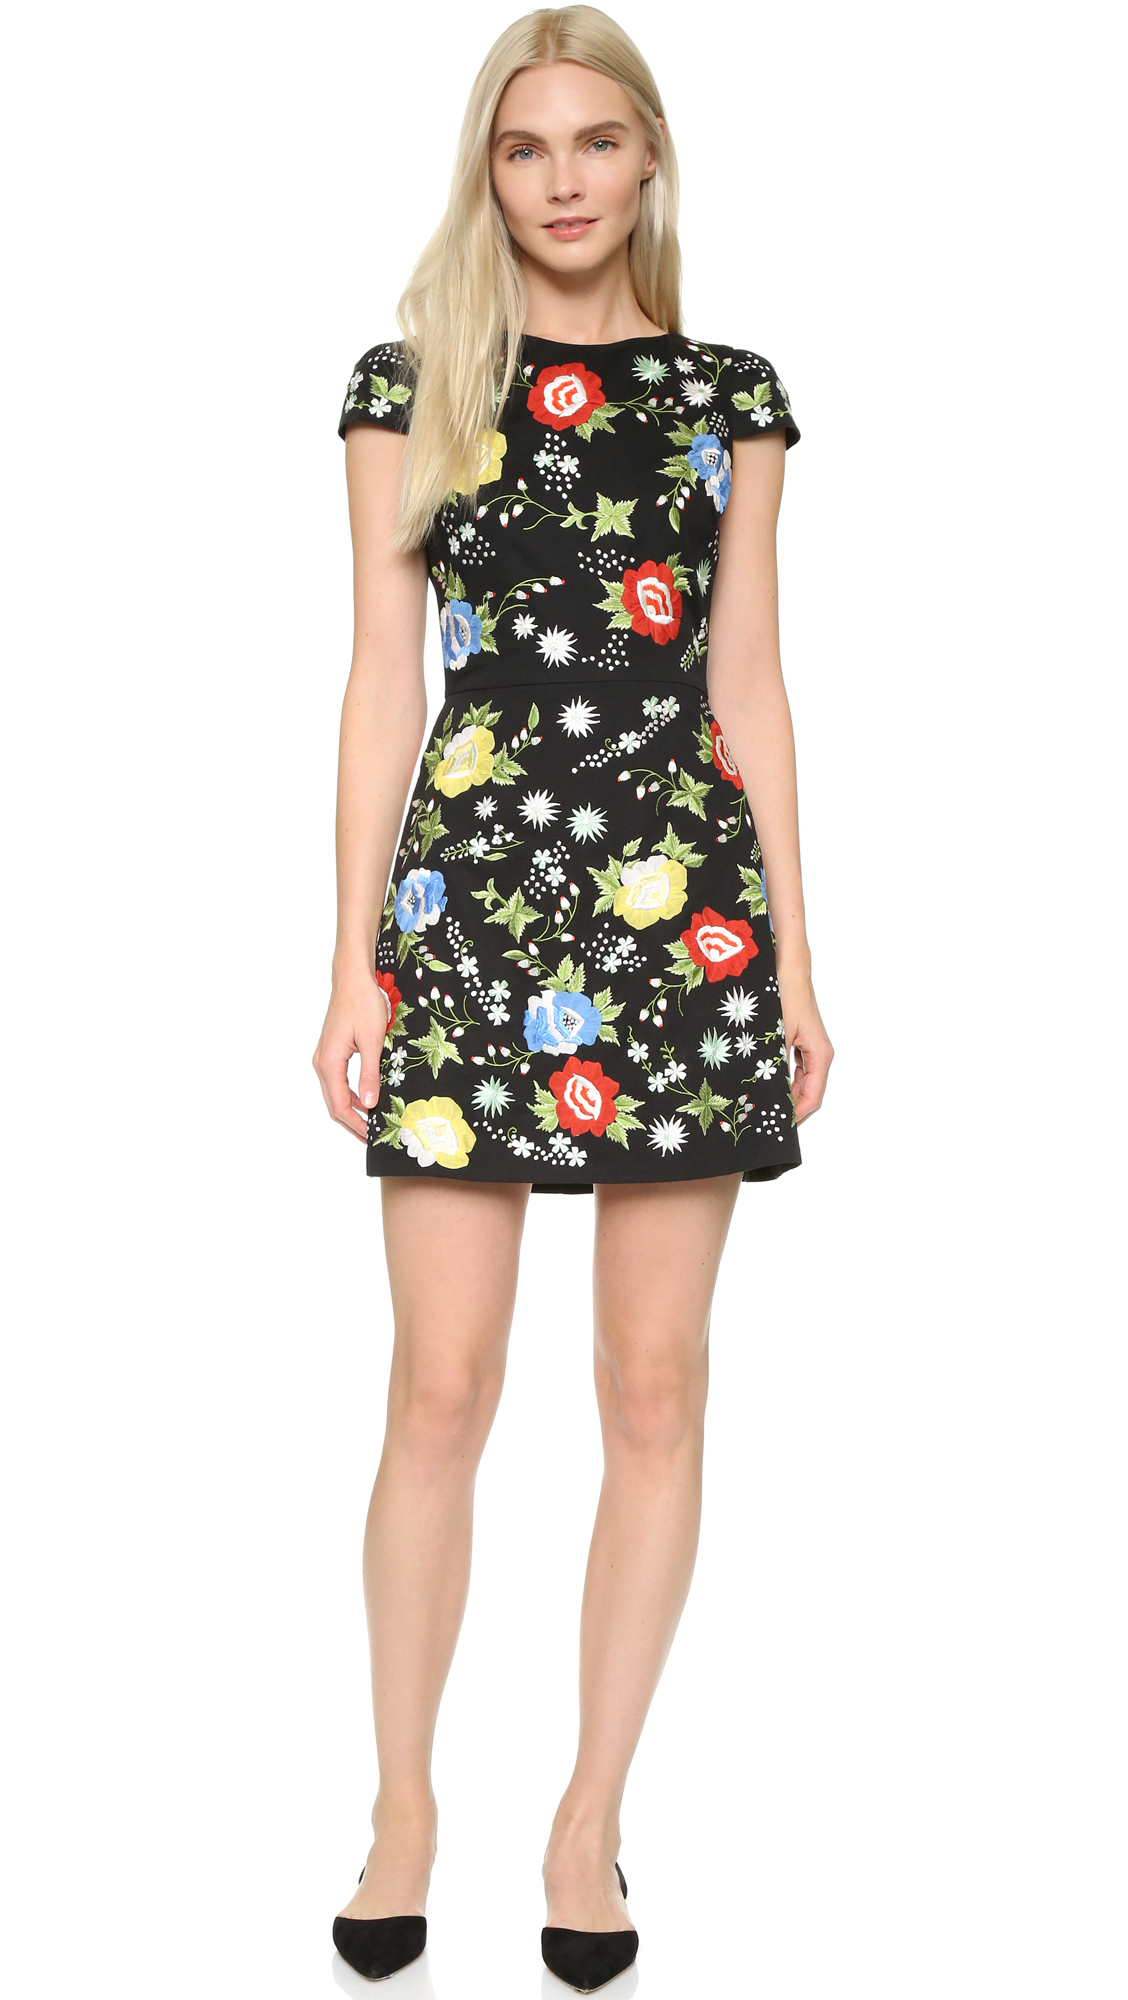 embroidered floral dress - Black Alice & Olivia Sale Factory Outlet Discount Outlet Cheap Many Kinds Of Footlocker NlJCL